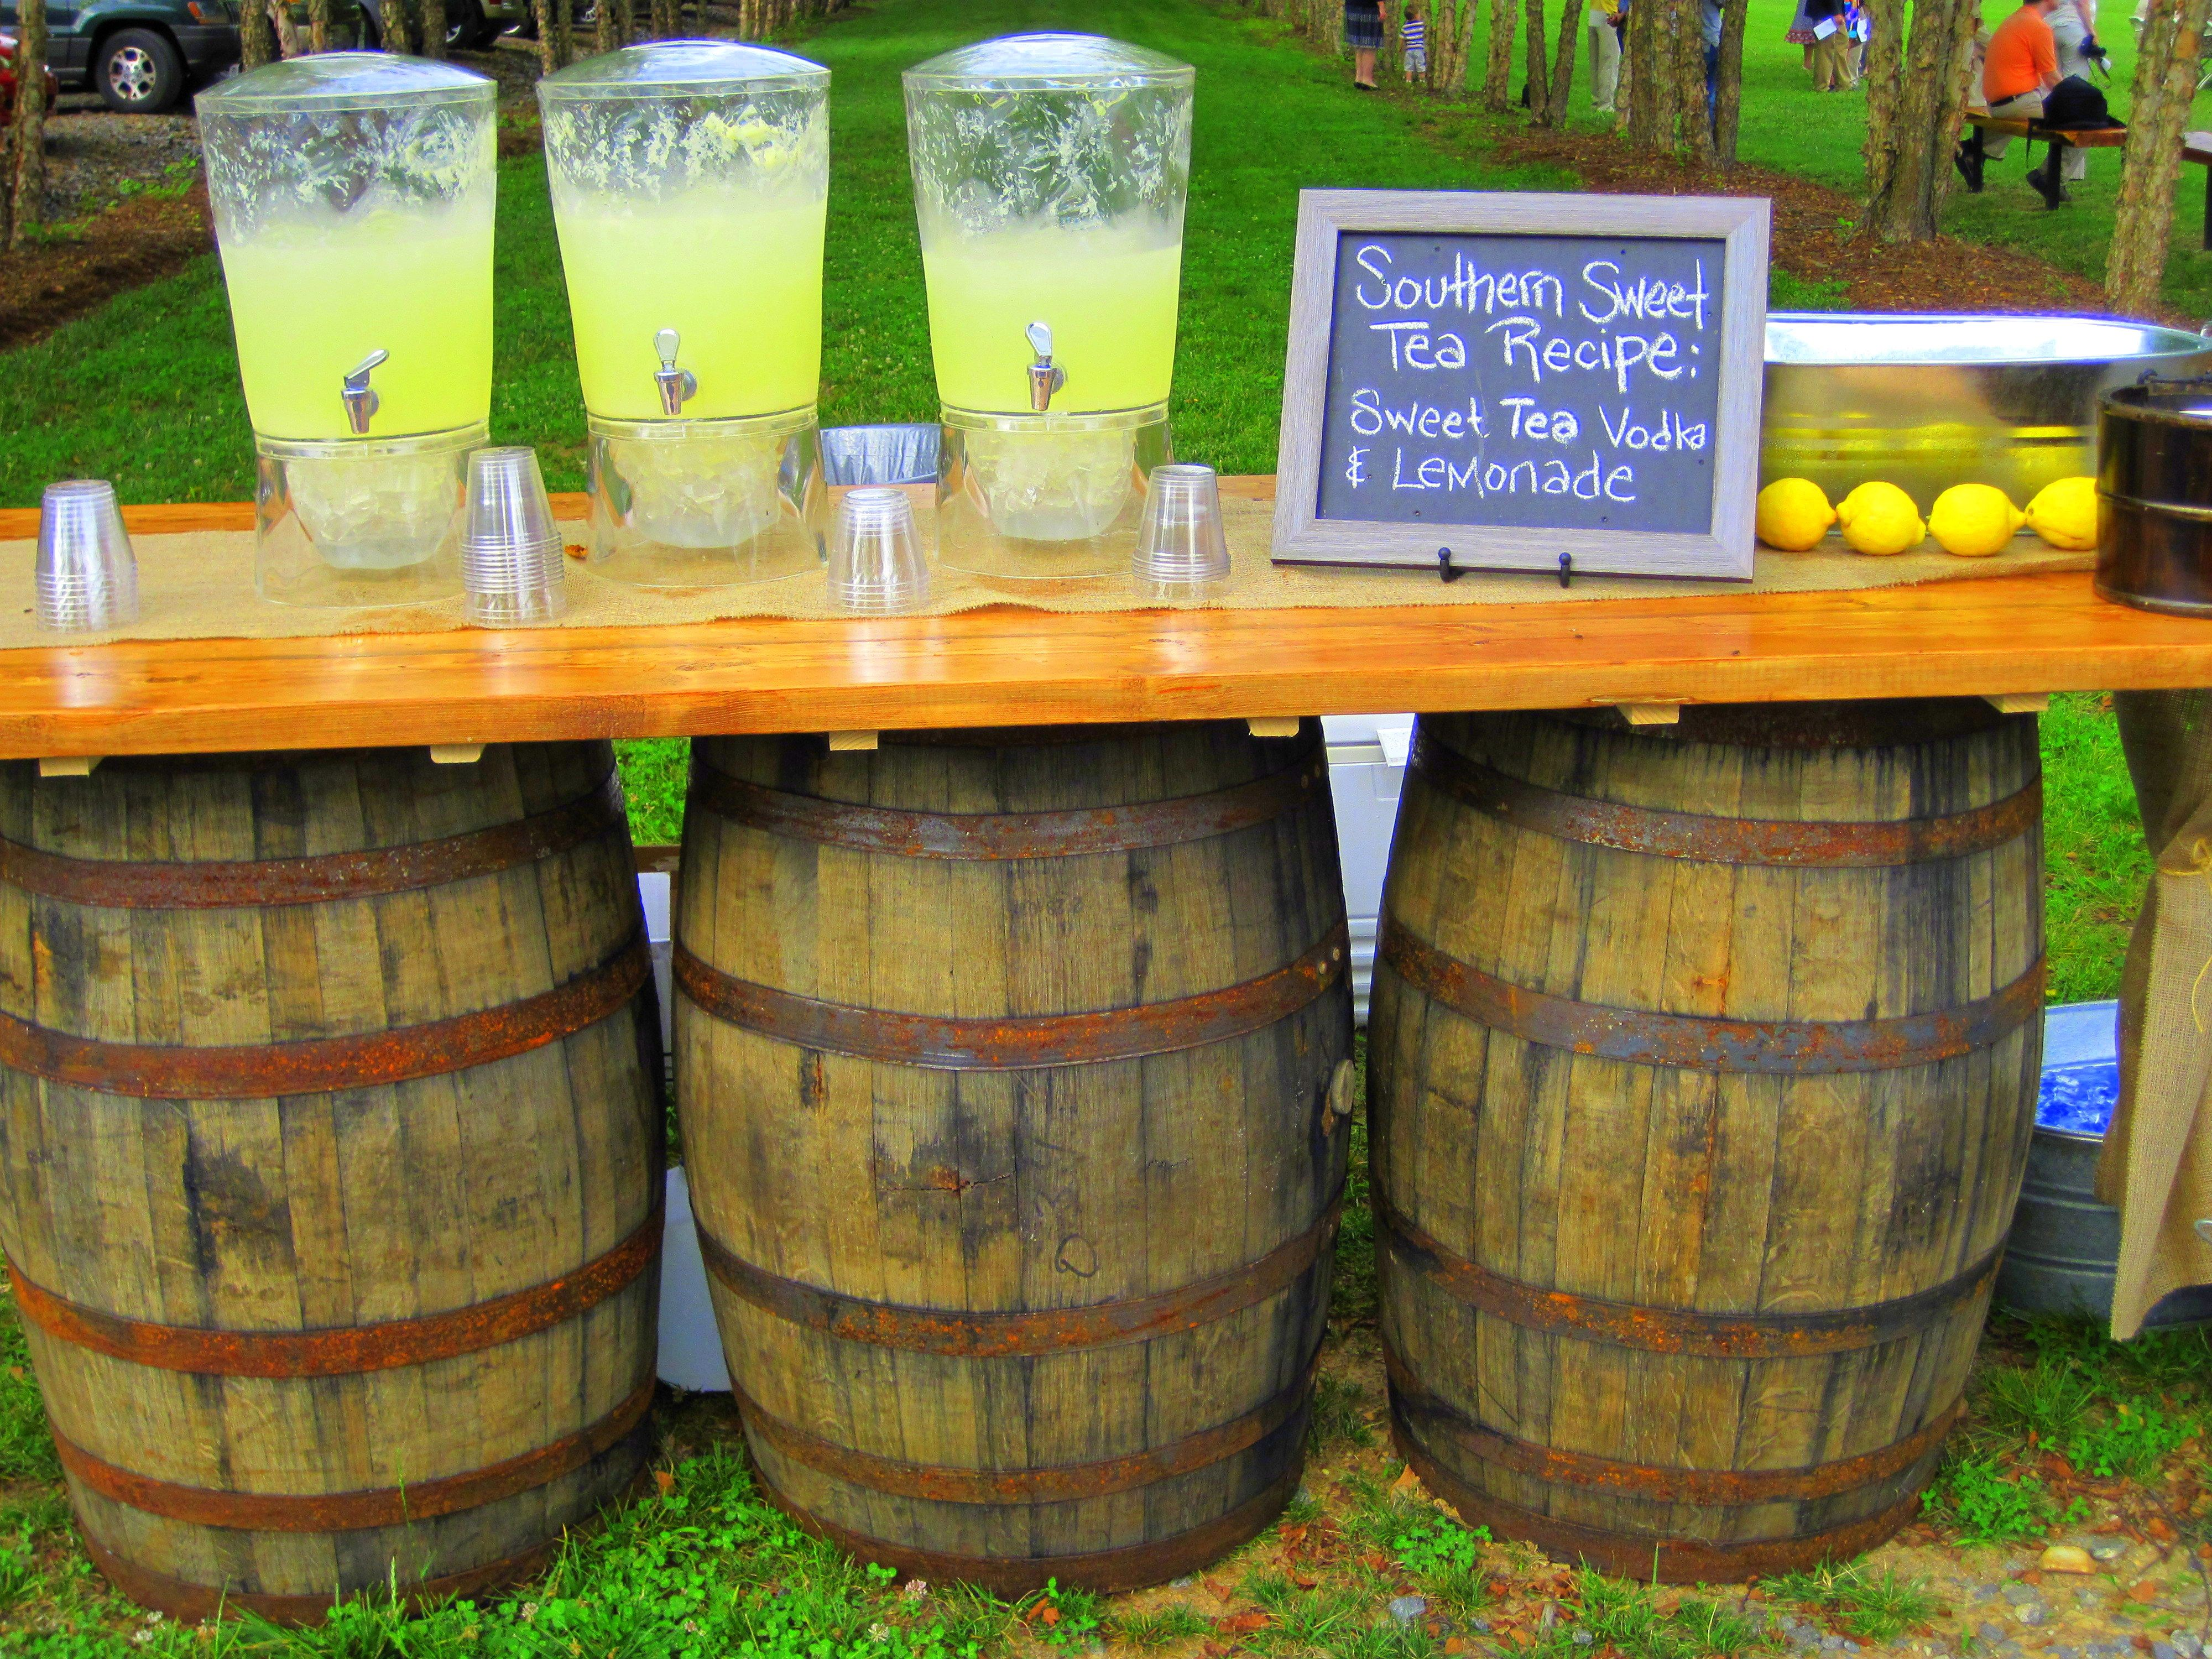 How To Keep Your Guests Comfy At Your Outdoor Wedding: A Lemonade Stand Is A Great Way To Keep Your Guests Cool